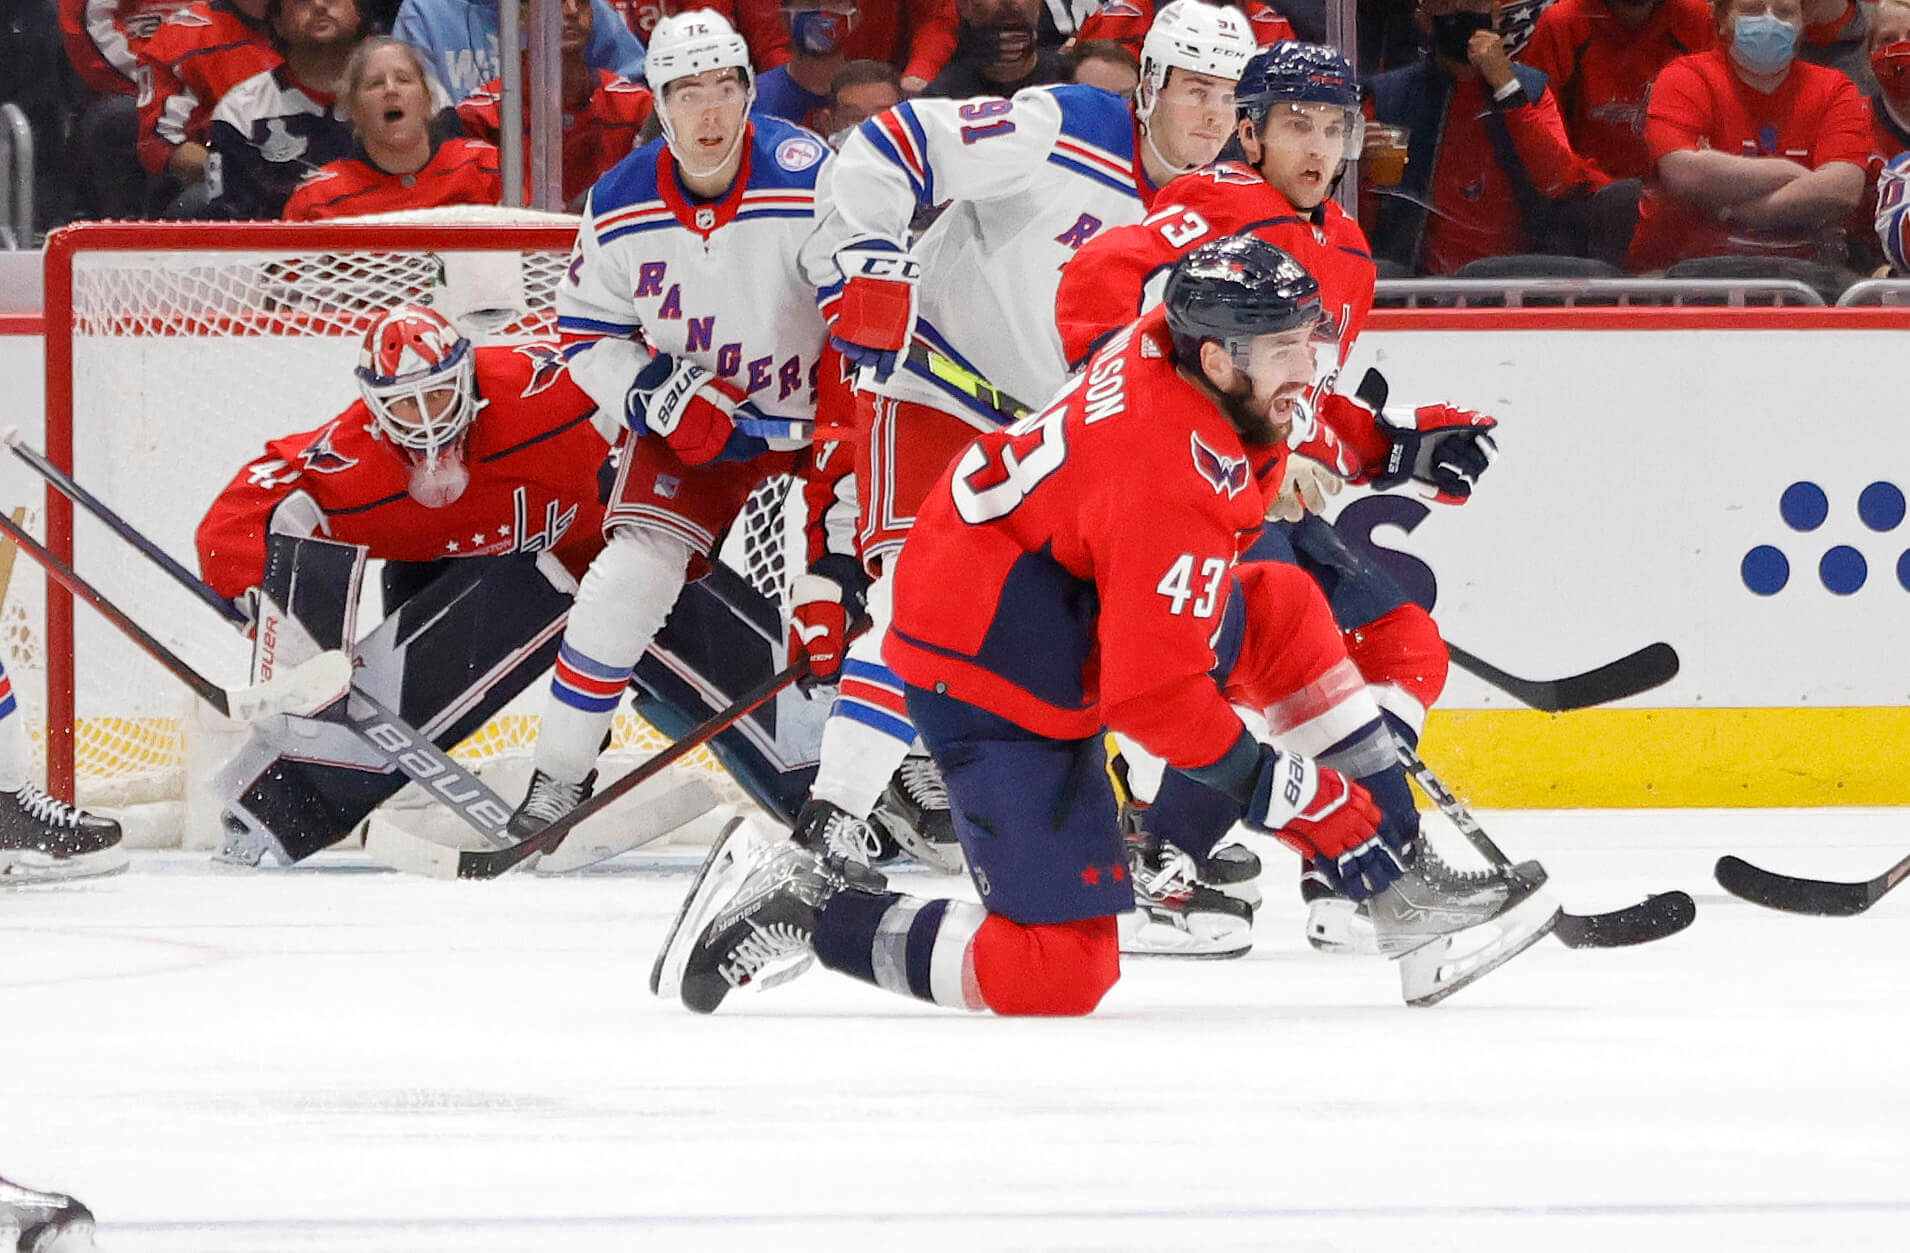 How To Bet - Learn How to Make Hockey Parlay Bets